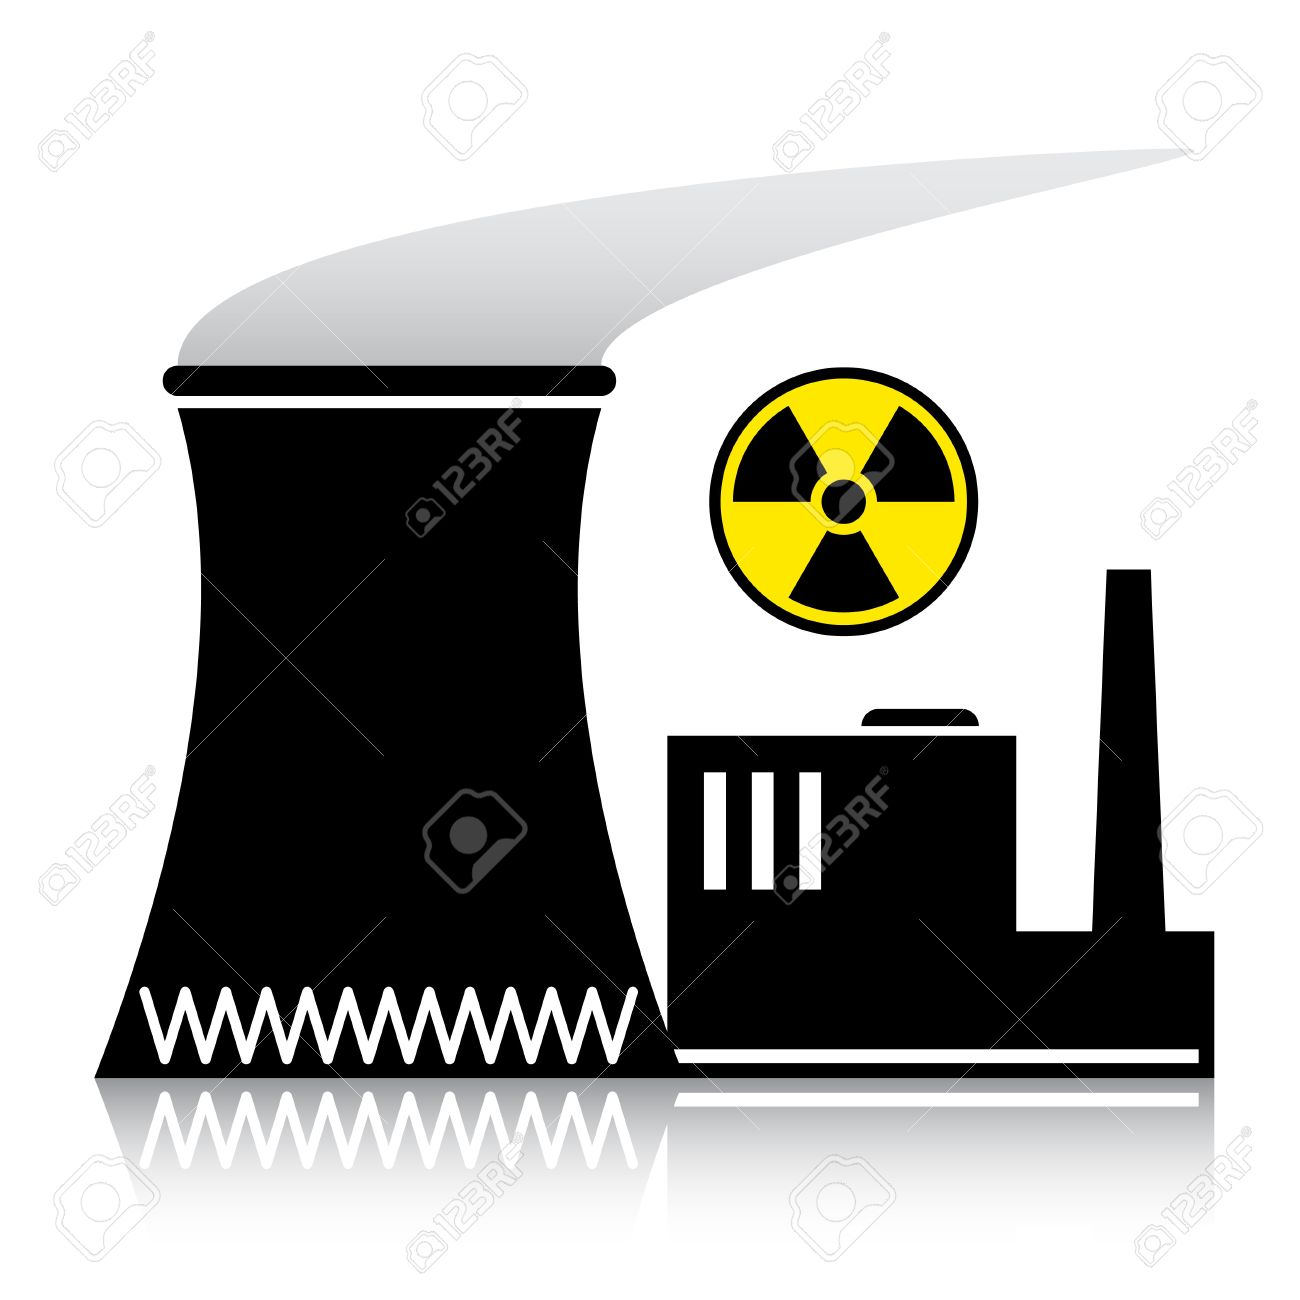 Atomic power plant clipart - Clipground